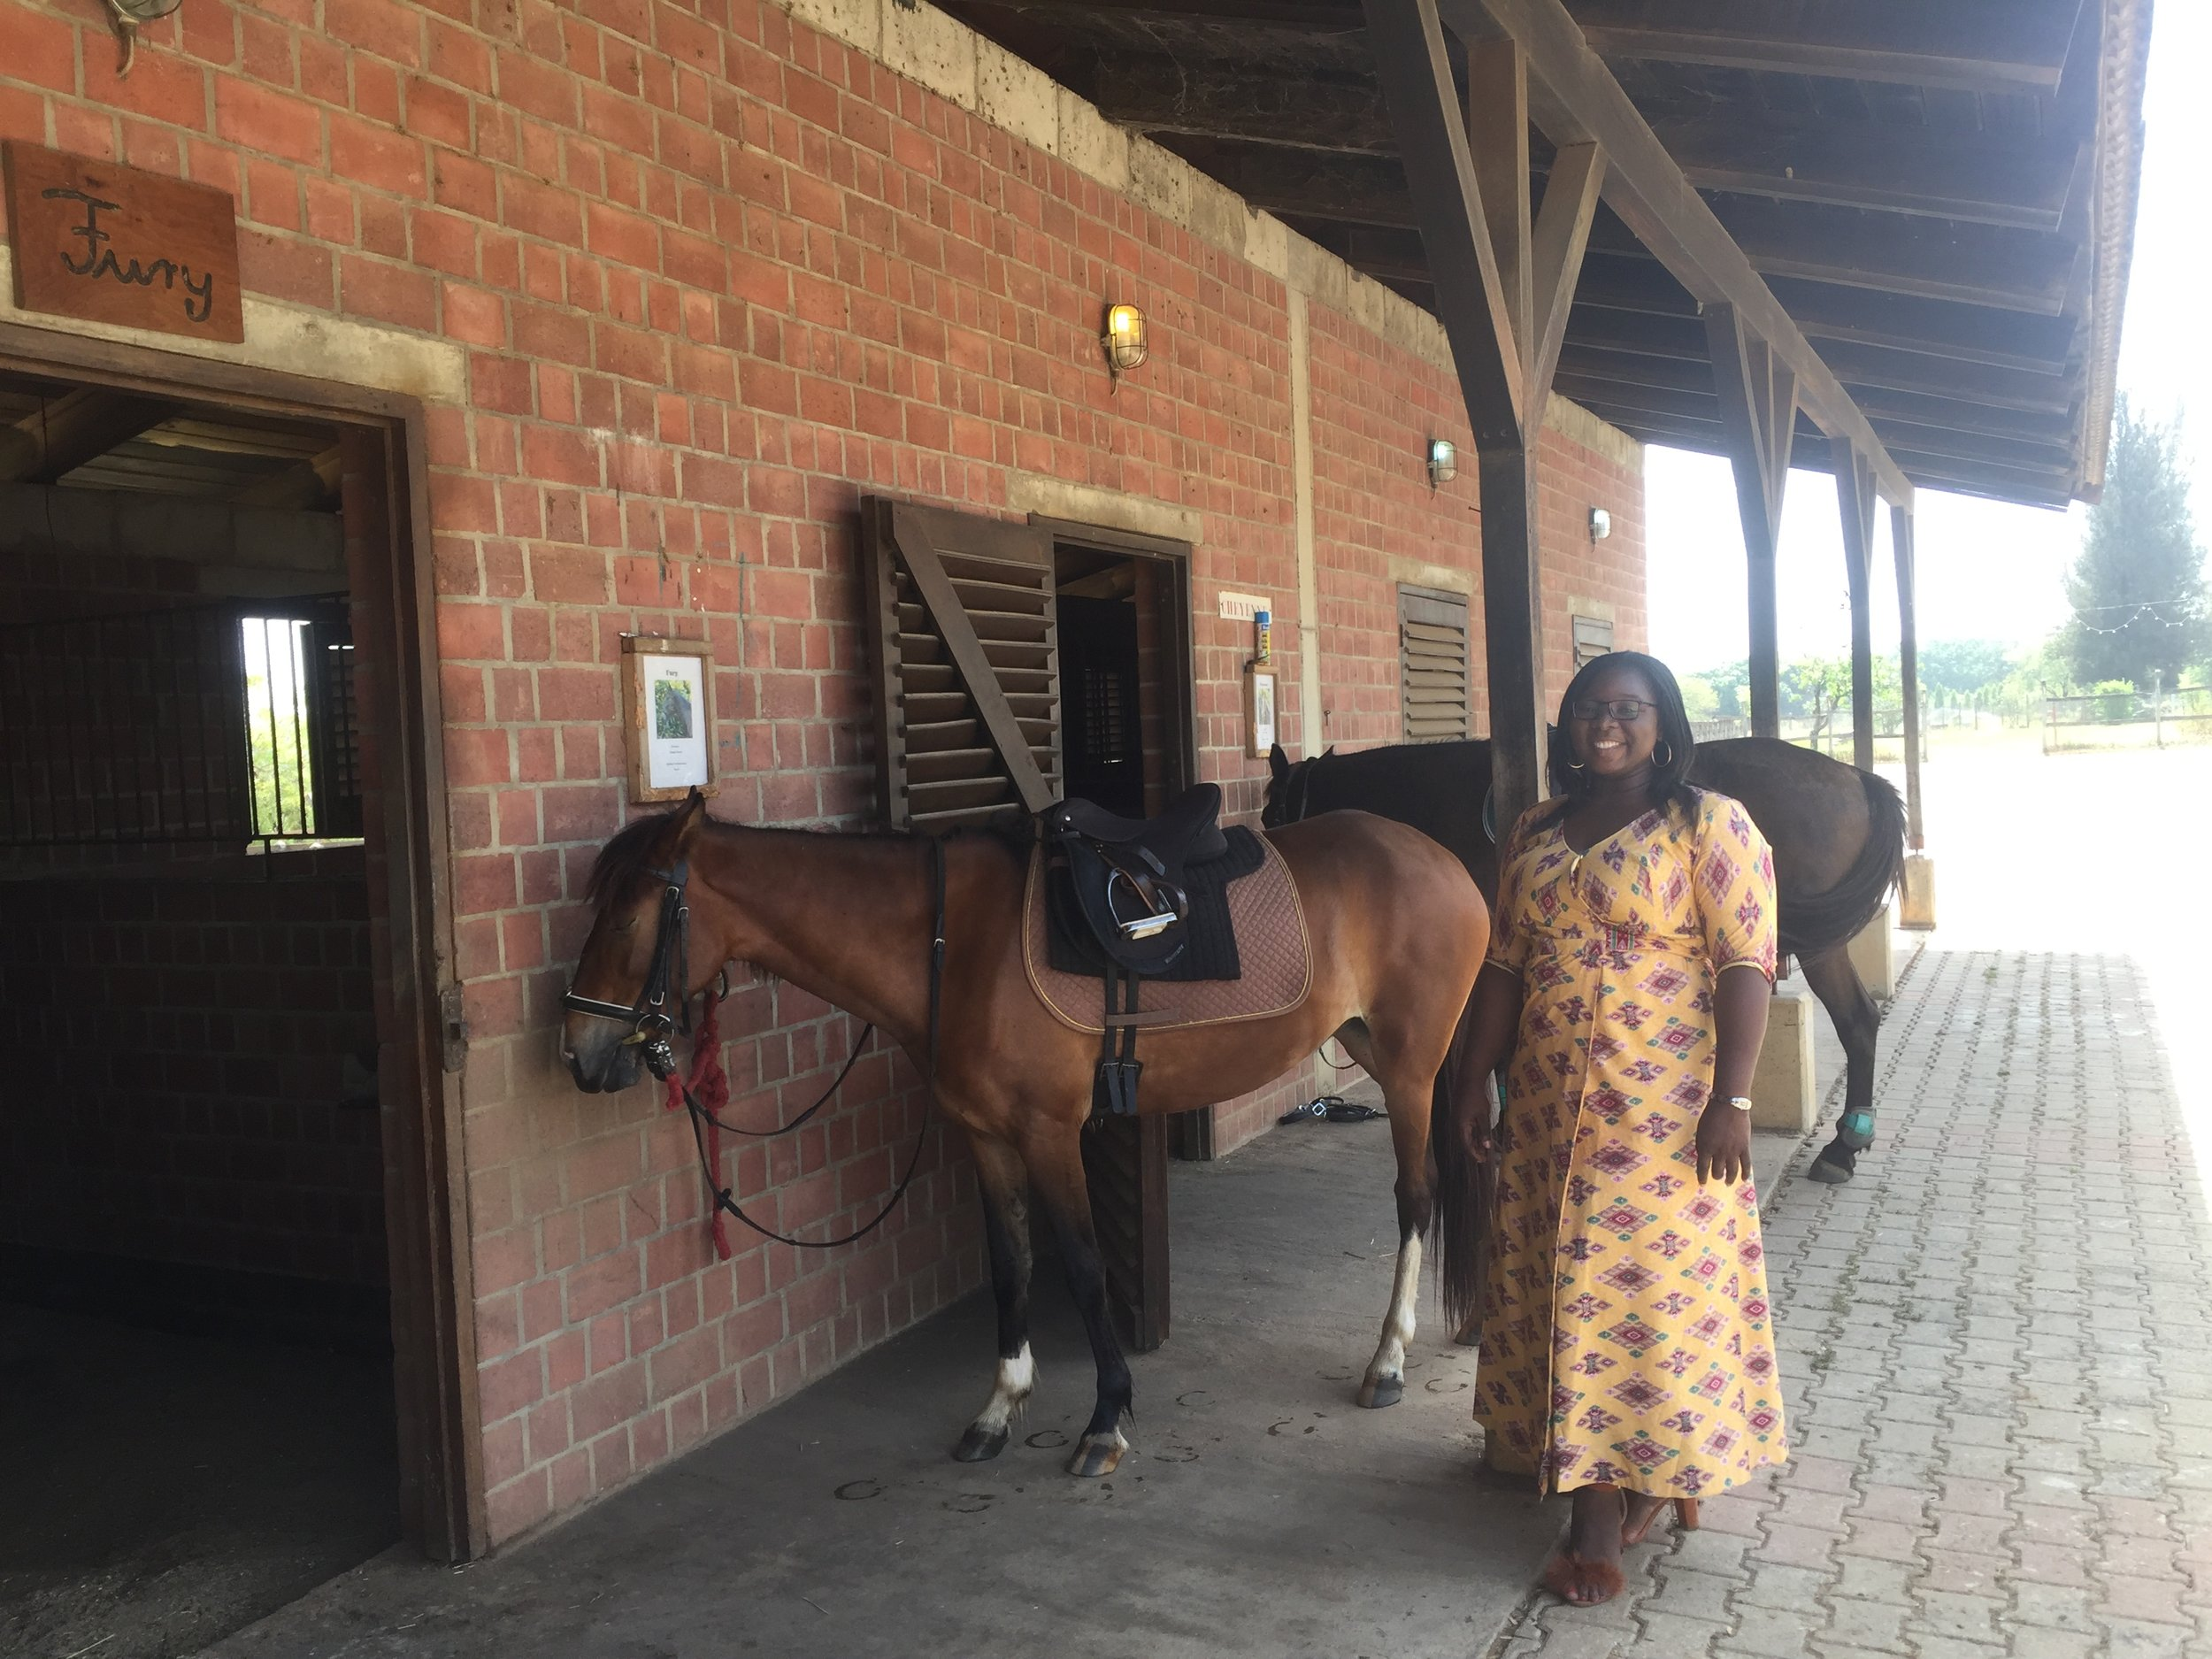 The horses at the horse stable